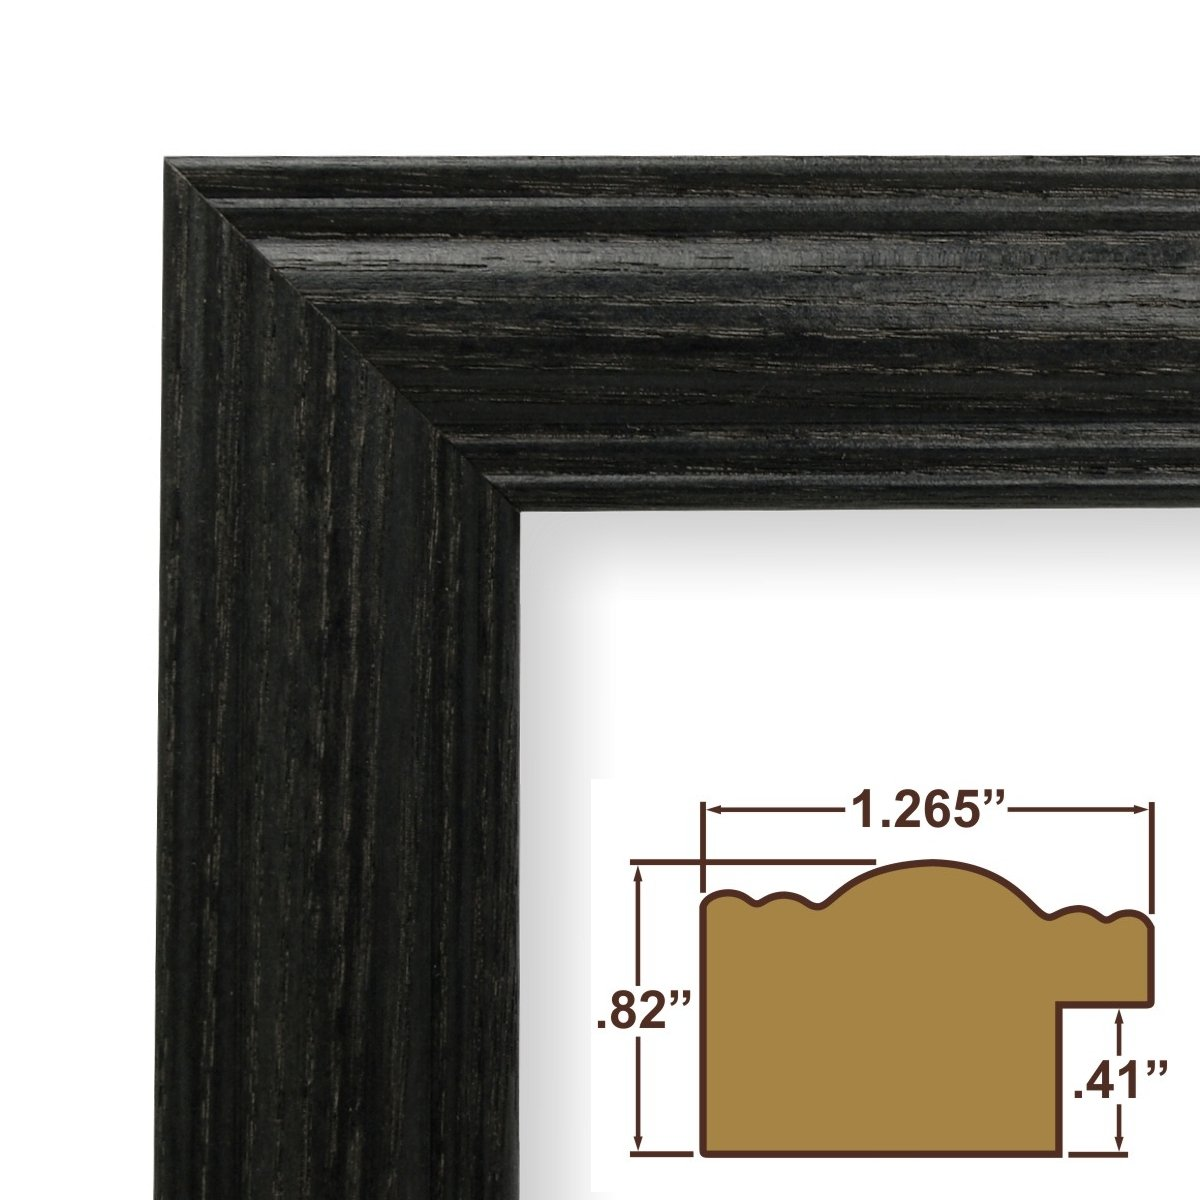 Amazon.com - 20x32 Picture / Poster Frame, Wood Grain Finish, 1.265 ...